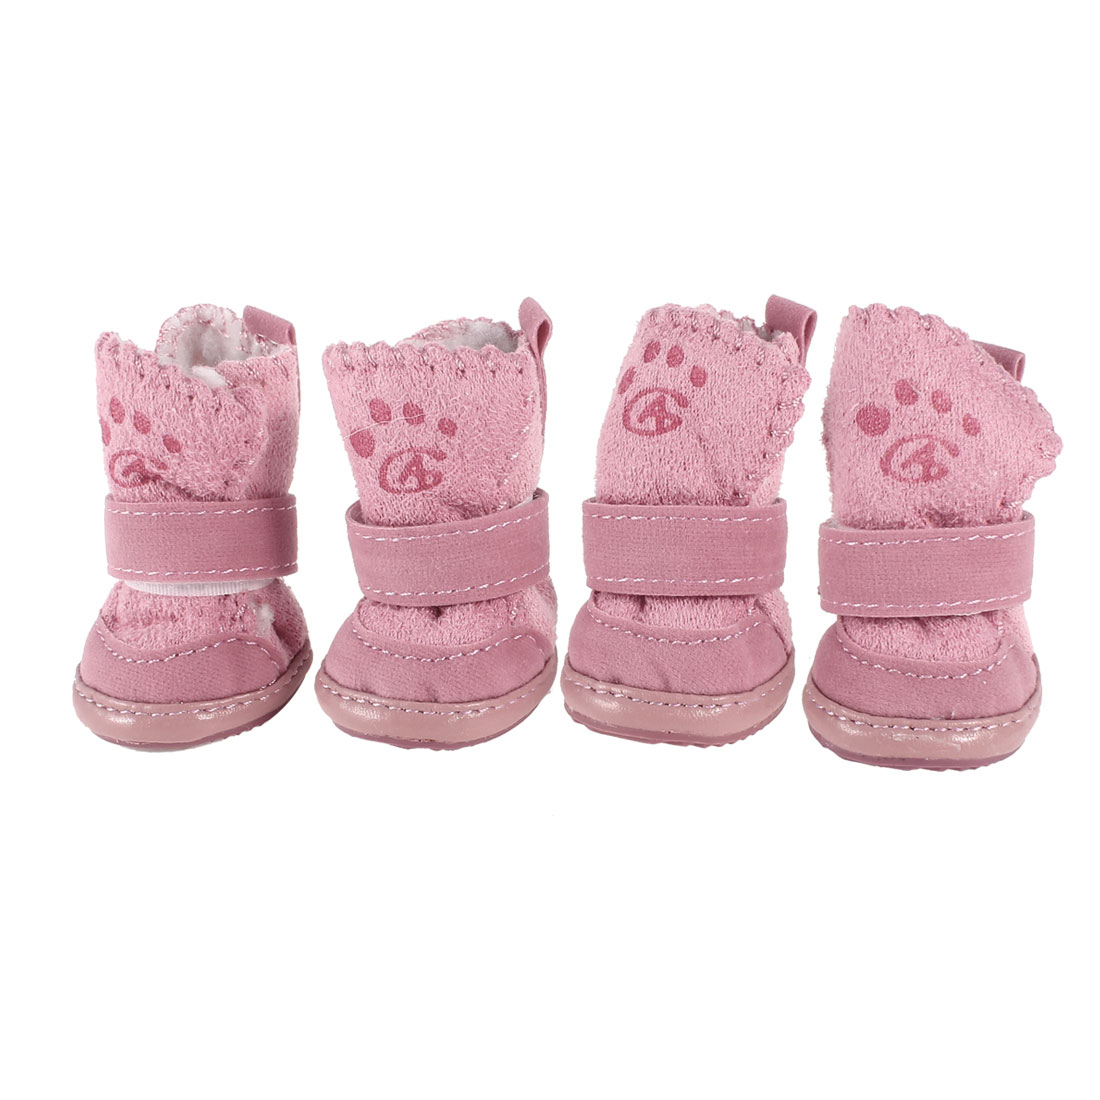 Pink Non Slip Sole Detachable Closure Booties Pug Dog Shoes 2 Pairs Size 1